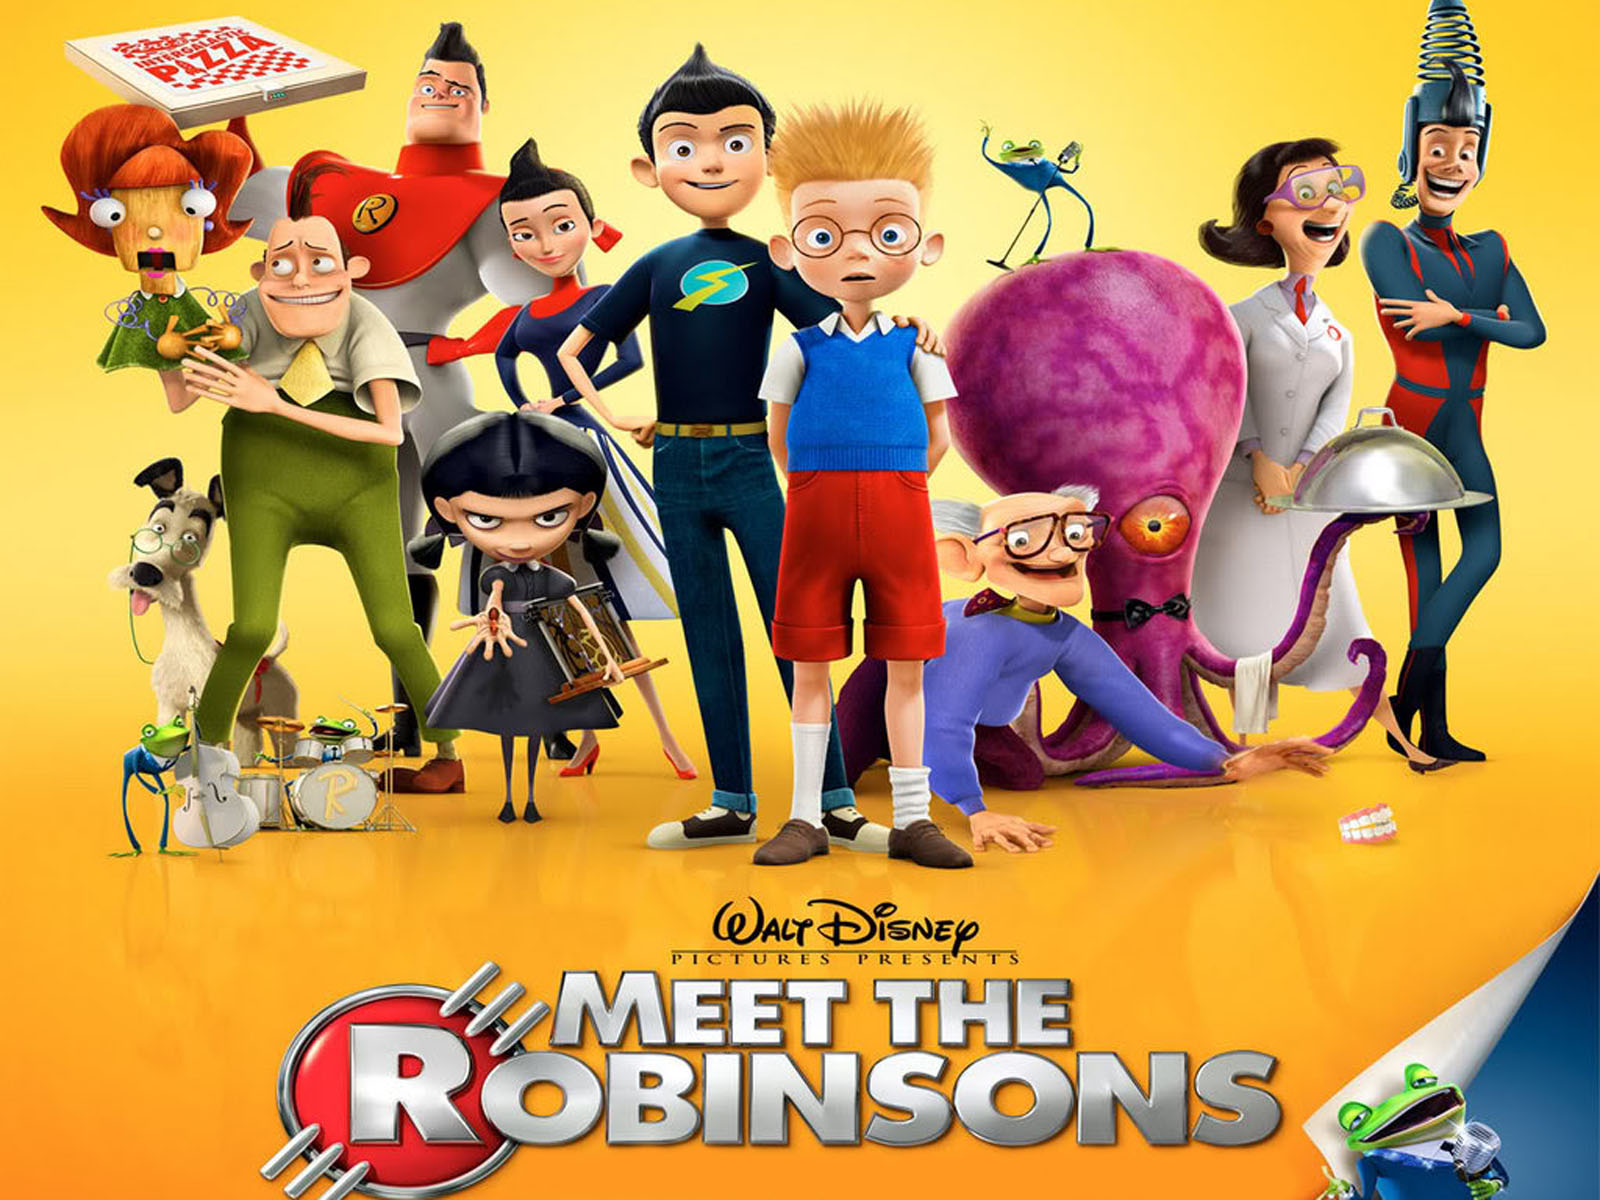 meet the robinsons pics